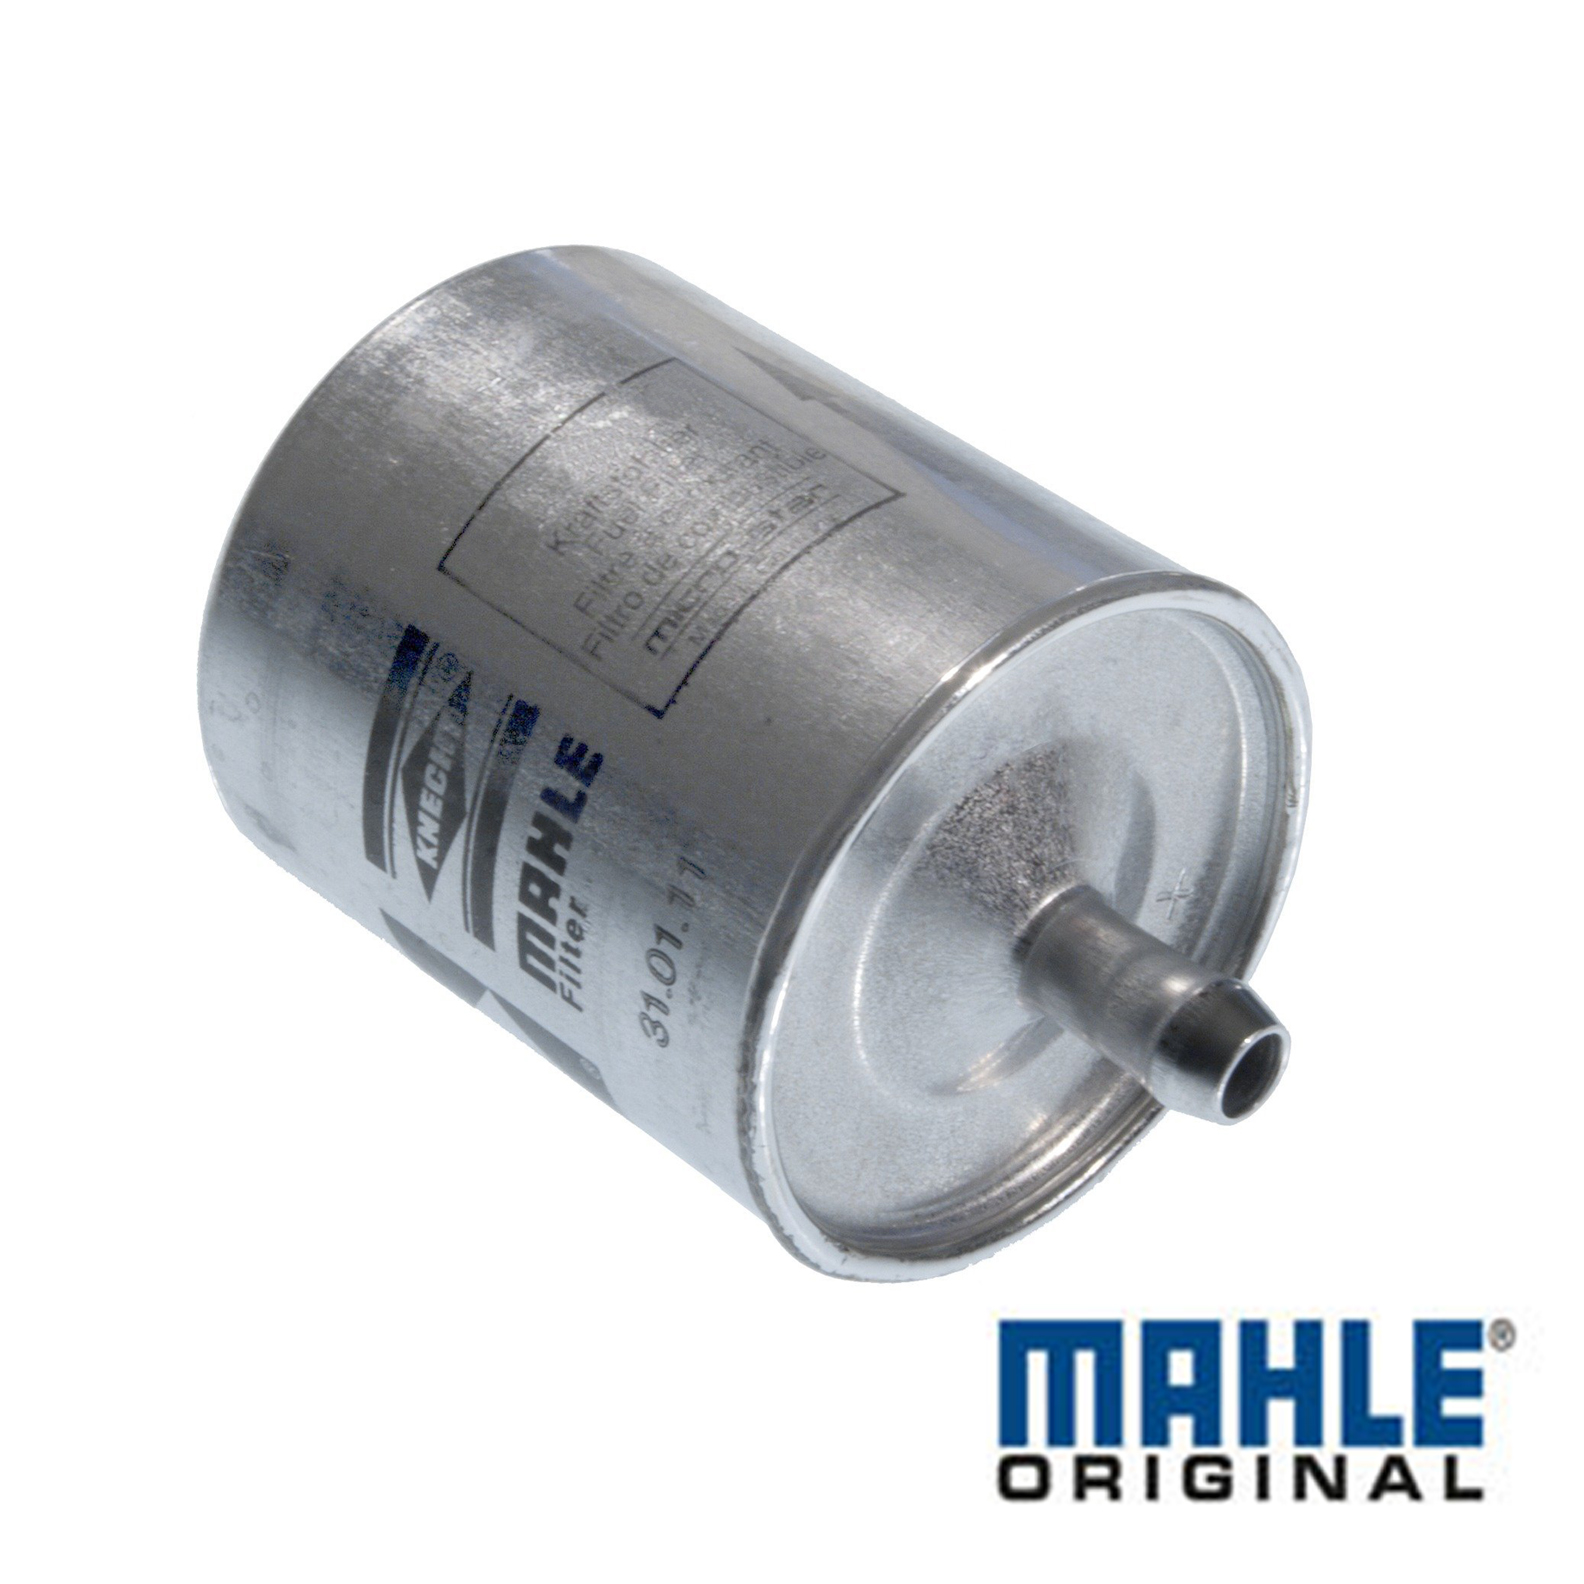 hight resolution of details about genuine mahle oem efi fuel filter bmw r850 r1100 r1200 13321460453